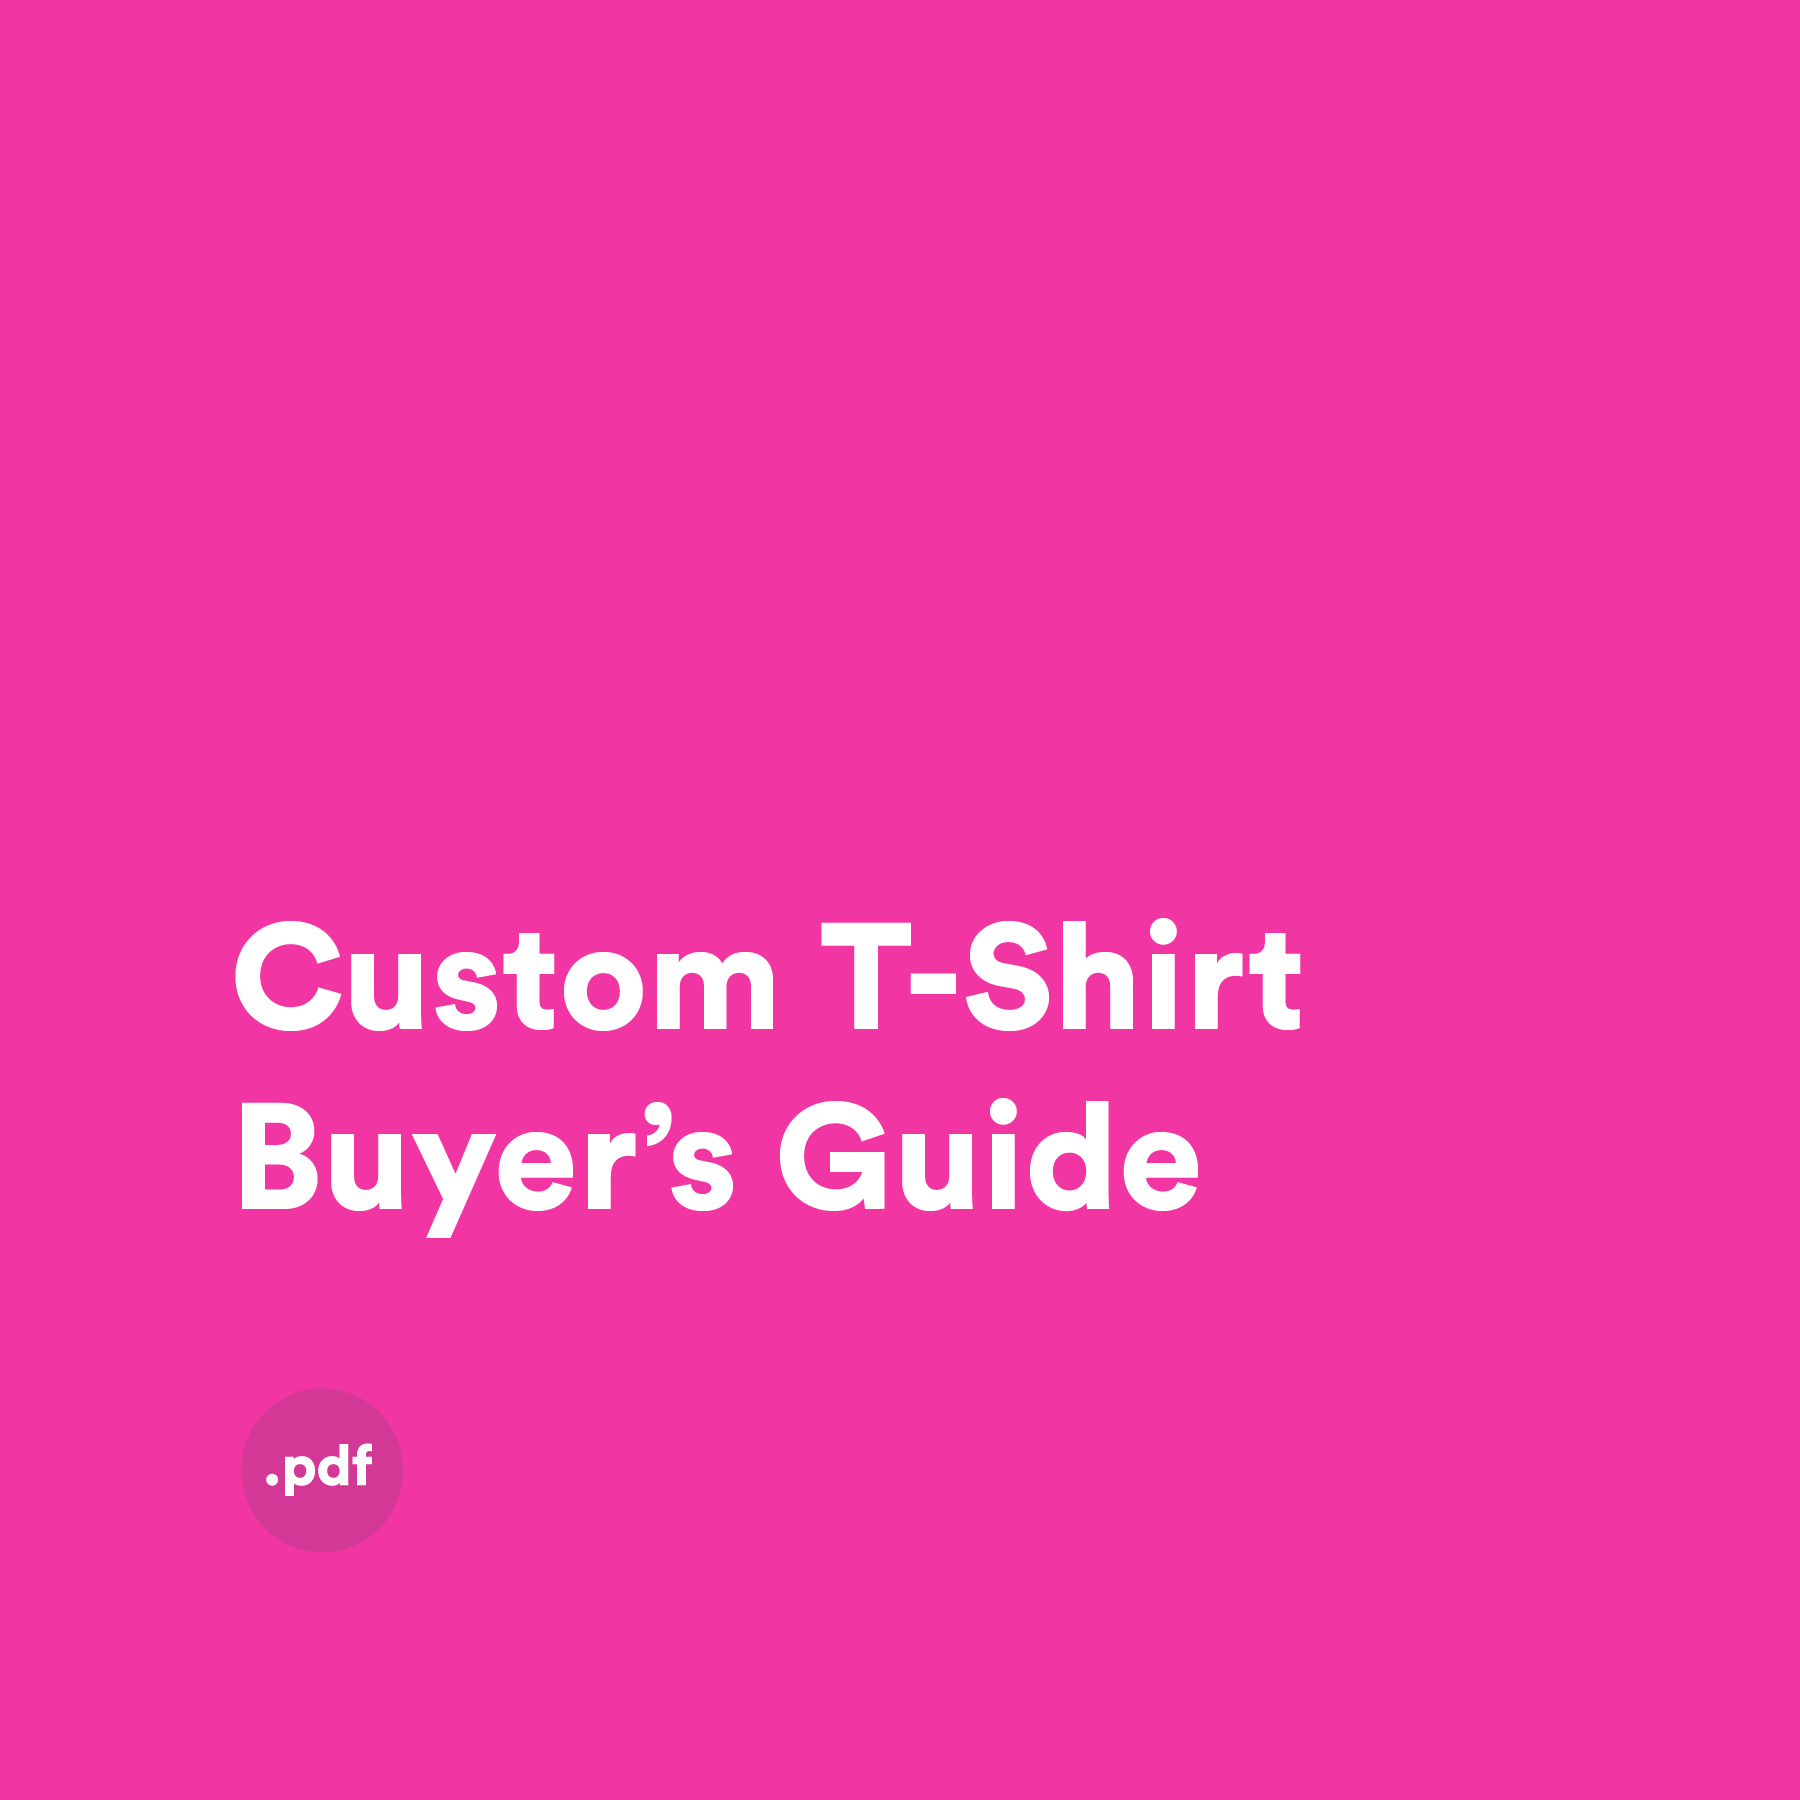 Custom T-Shirt Buyer's Guide